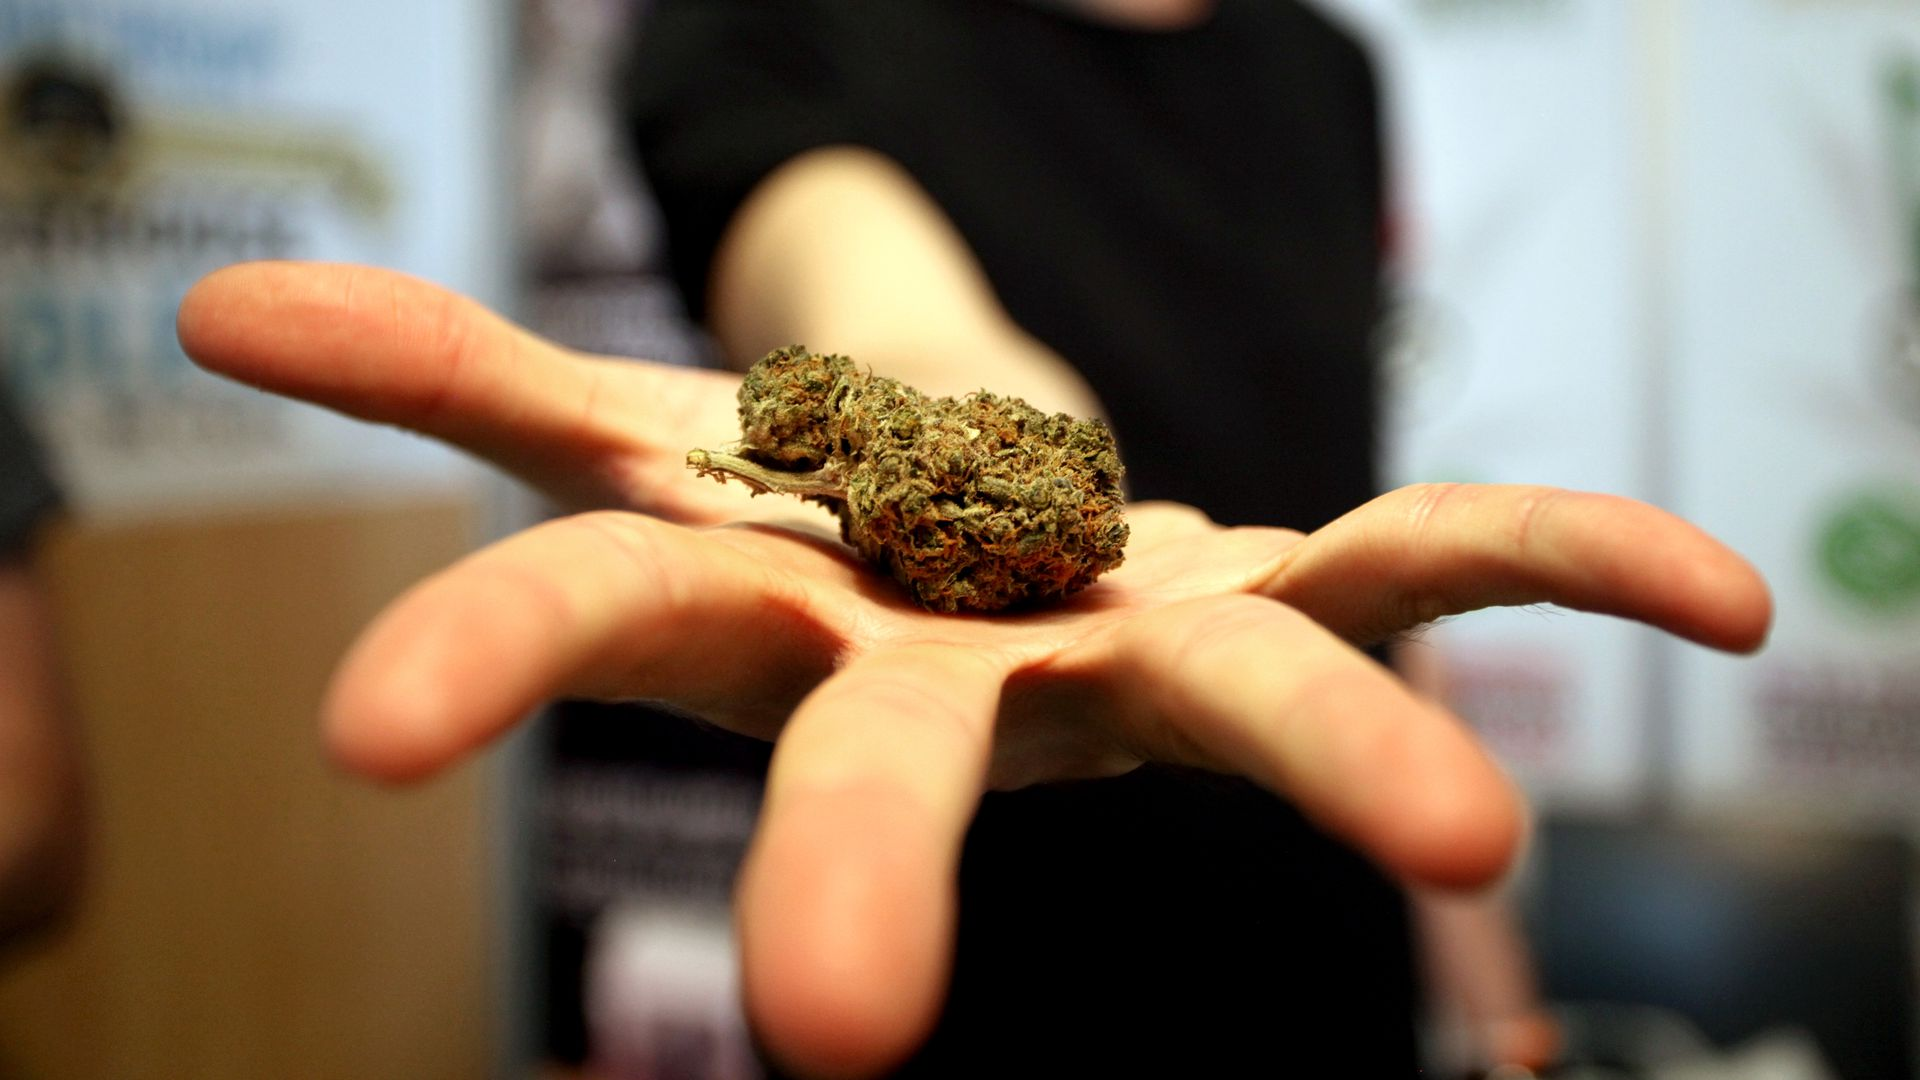 A man with an outstretched hand holding a nugget of marijuana.